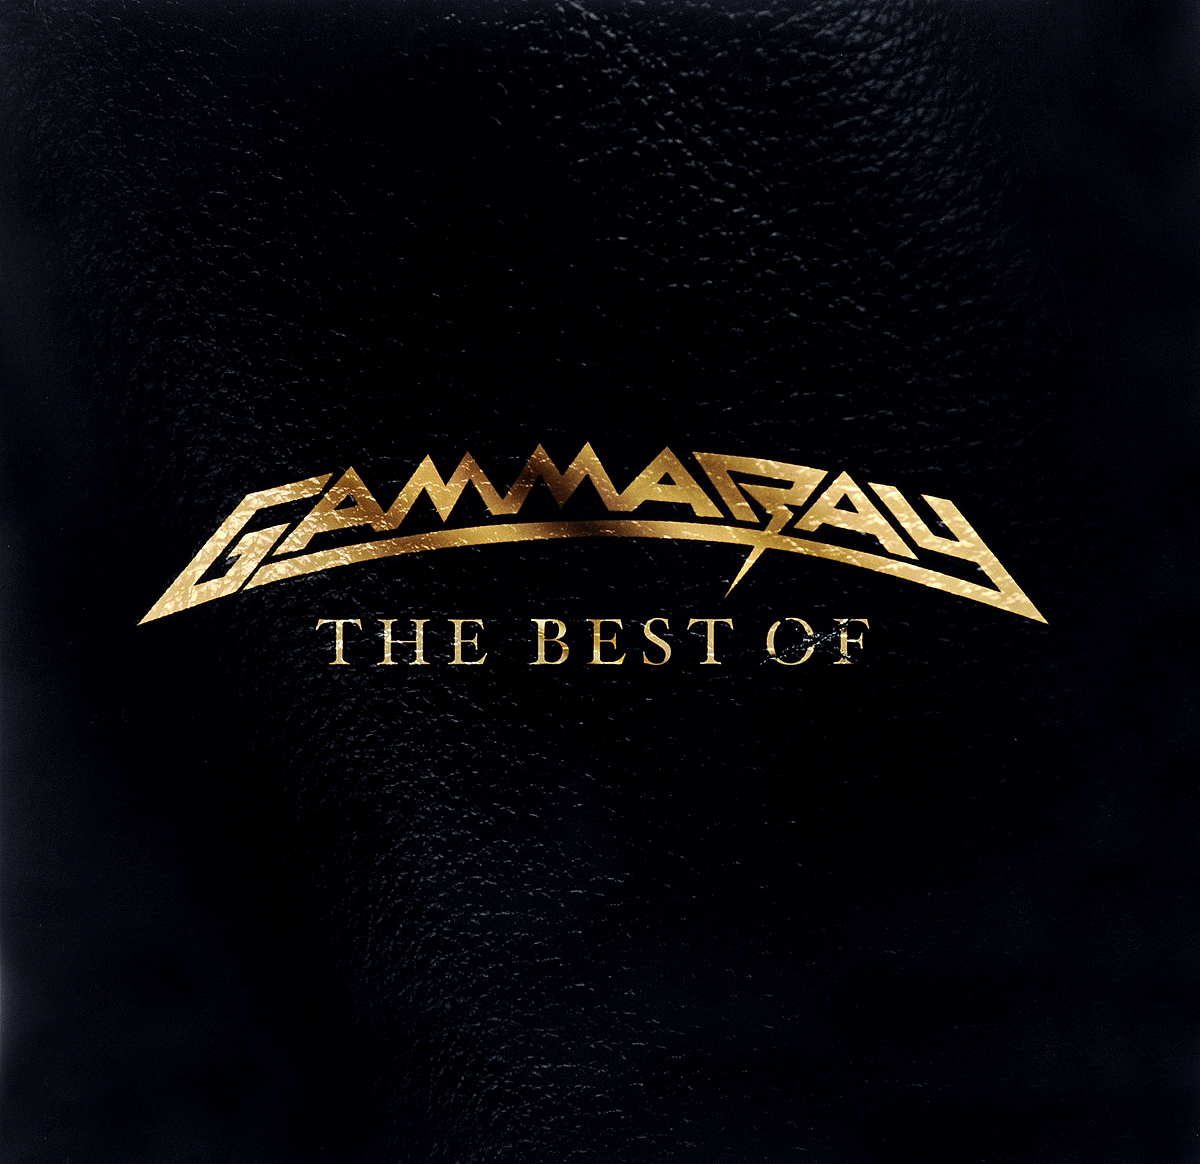 Gamma Ray Gamma Ray. The Best (Of) (4 LP) брюки 7 8 quelle b c best connections by heine 154161